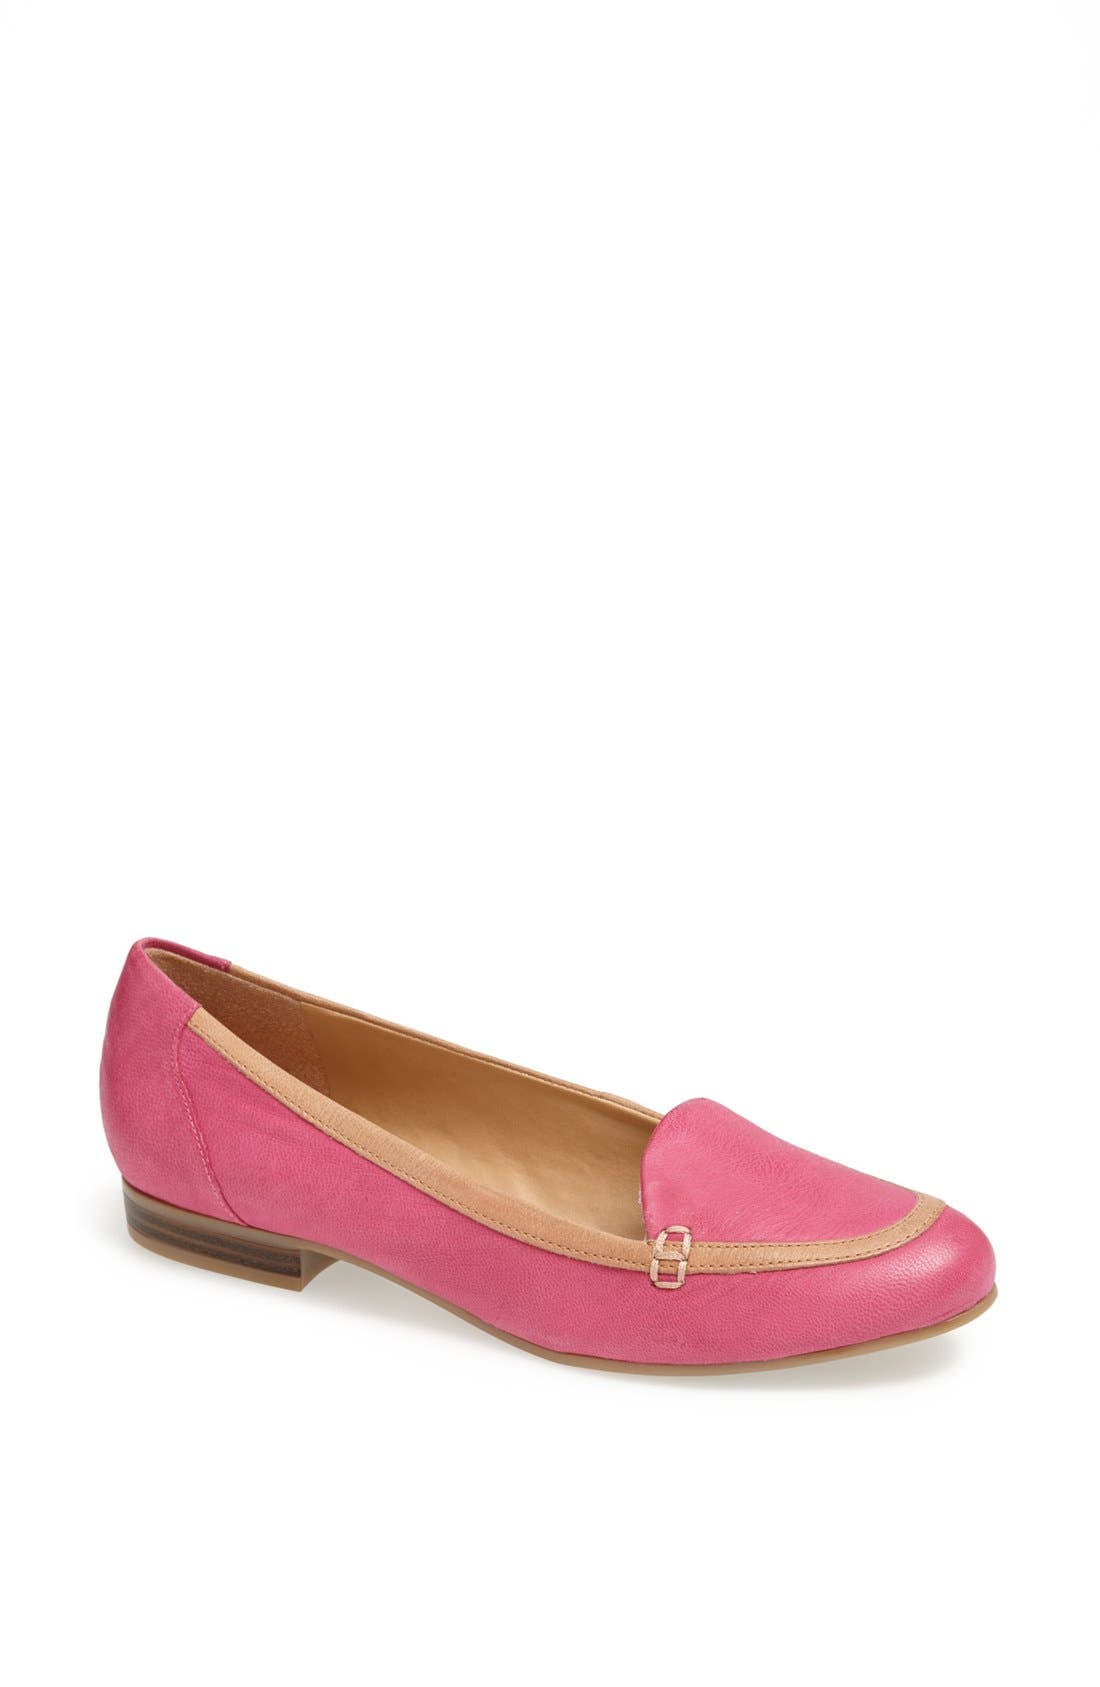 Alternate Image 1 Selected - Naturalizer 'Lancelot' Leather Flat